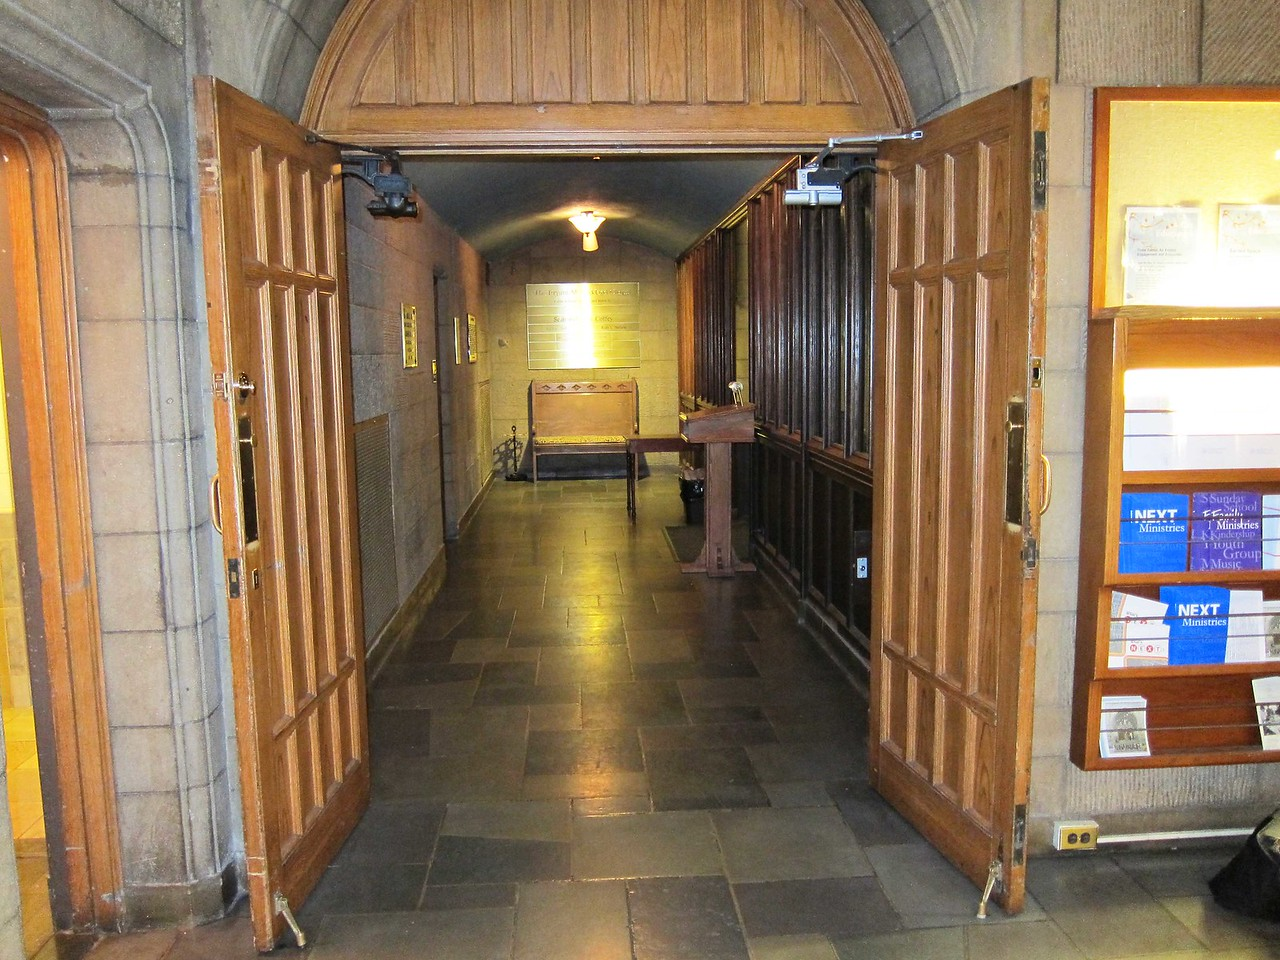 The vestibule of the Chapel seen from the main lobby off 7 W. 55th Street. To the right is the elevator bank; to the left are small restrooms for men and women. Behind the photographer is the receptionist's cubicle.